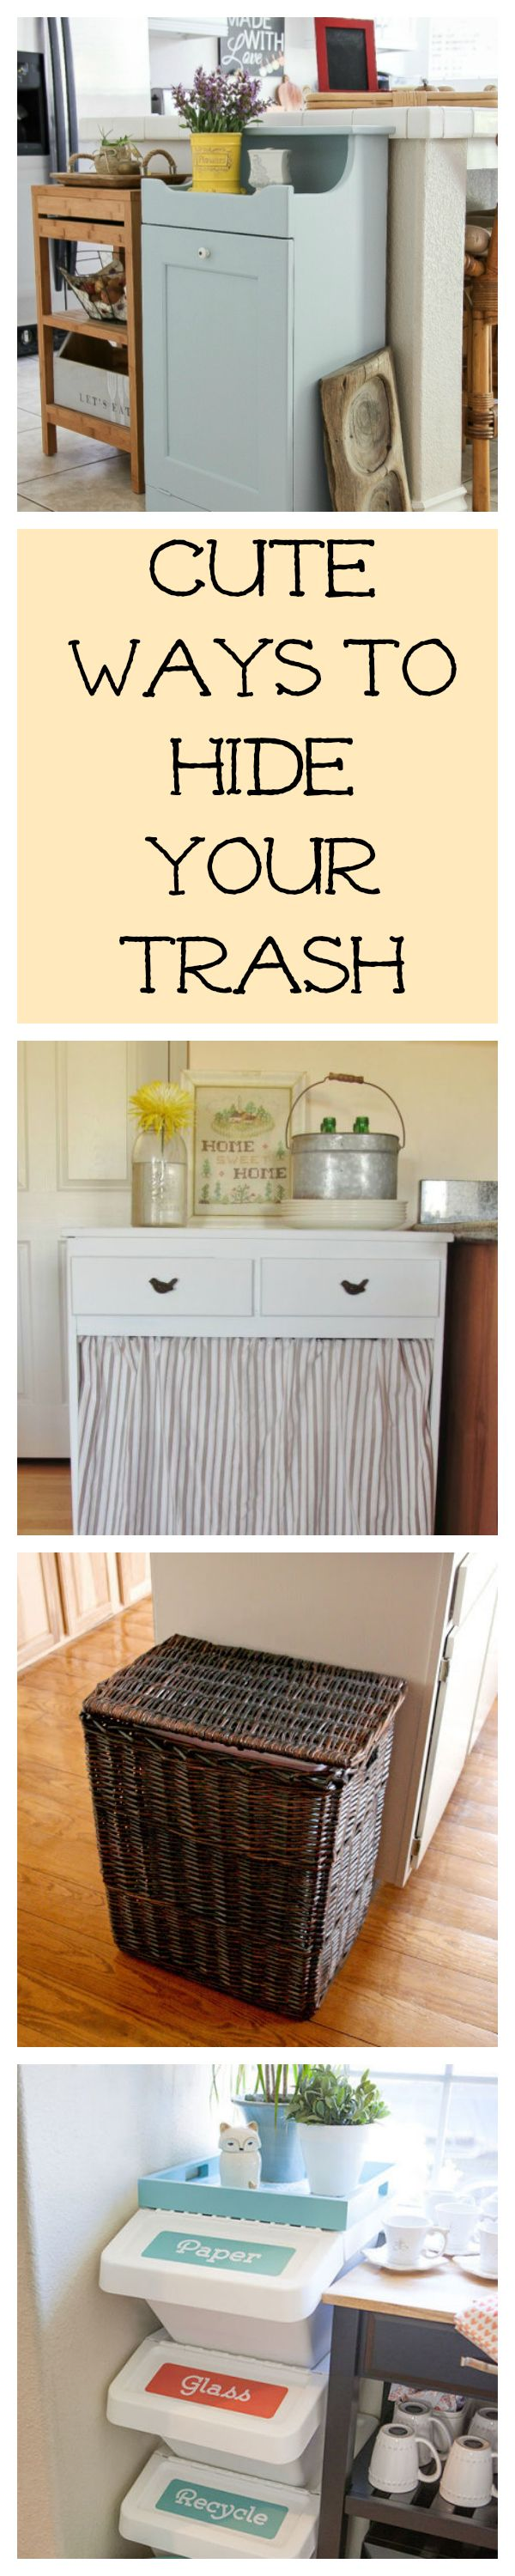 Hidden Kitchen Trash Cans #kitchenhacks